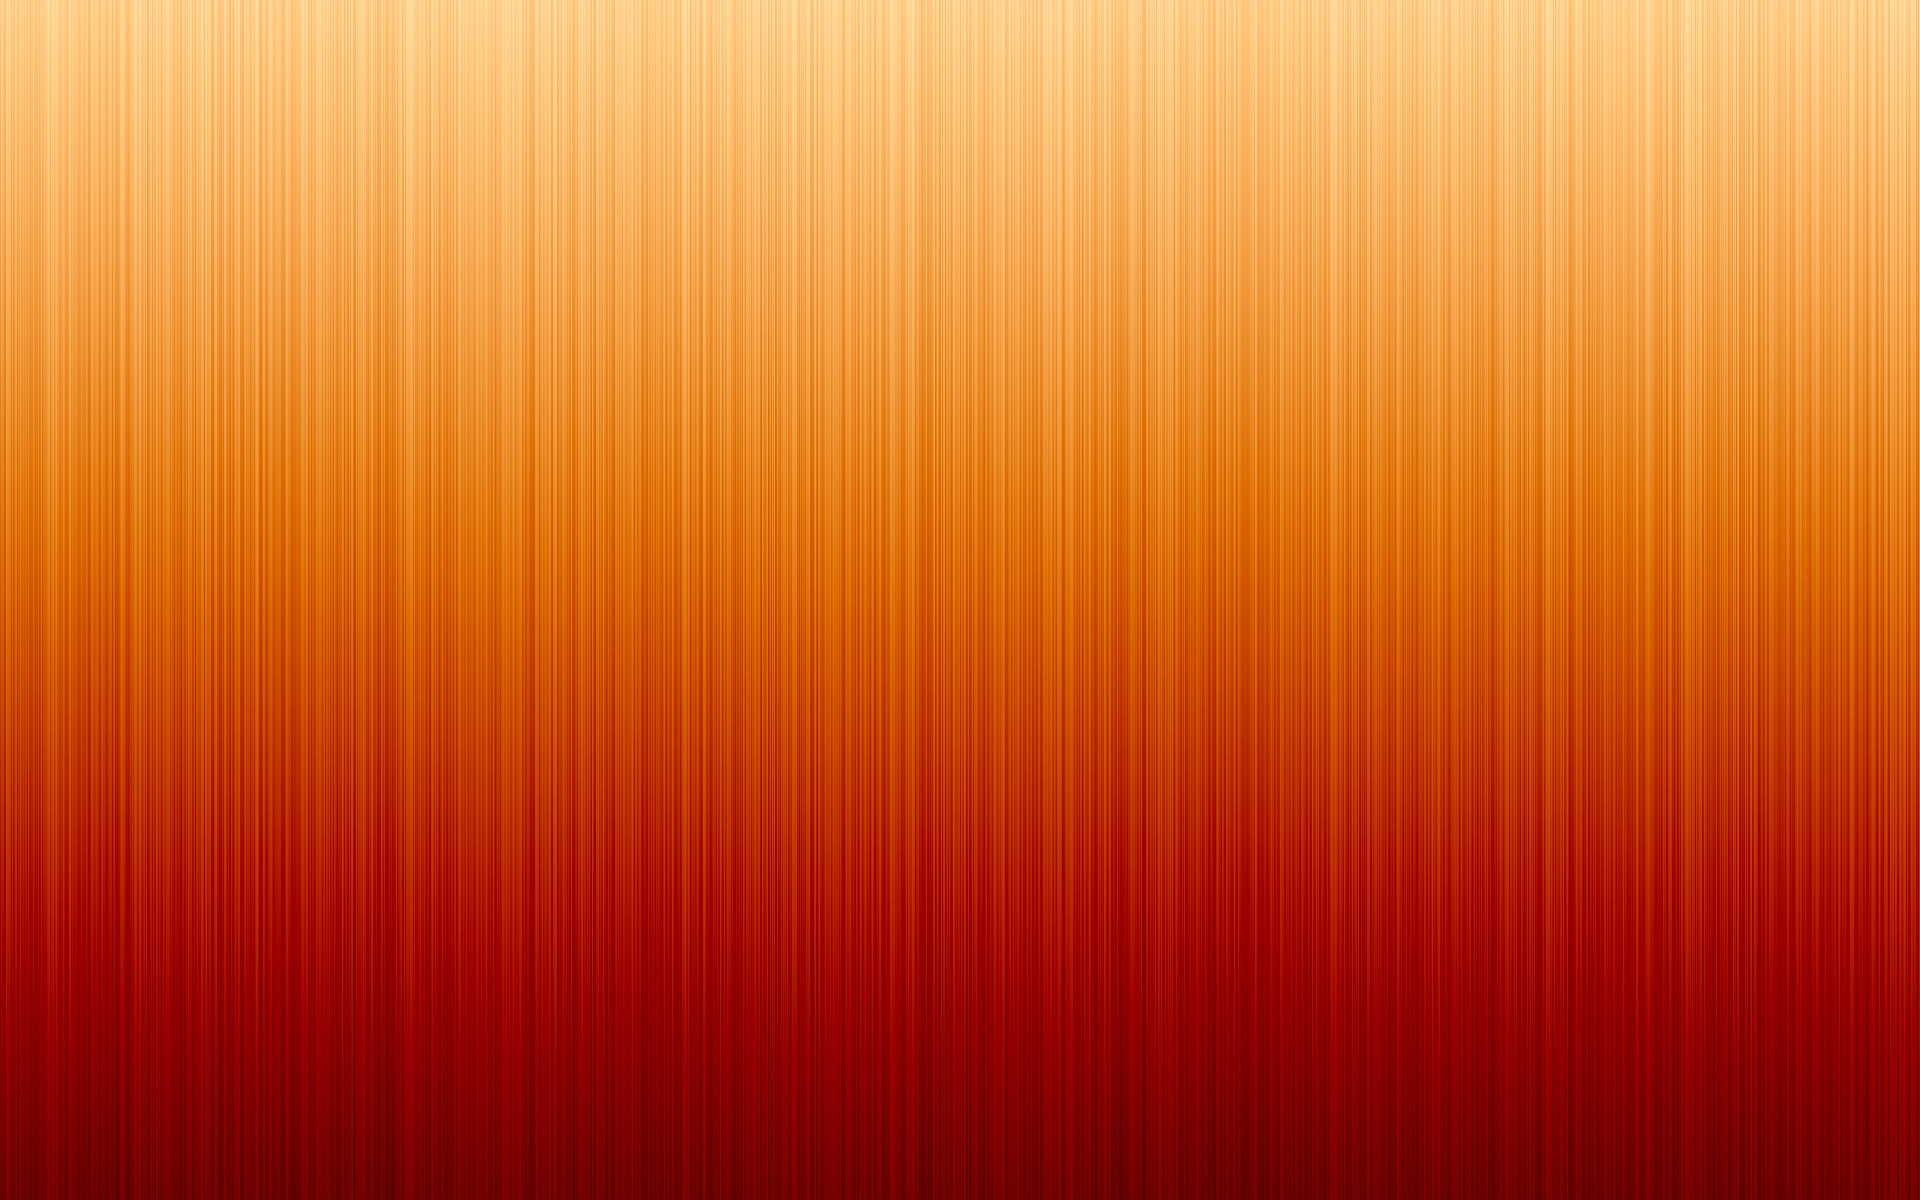 Orange Wallpaper 20